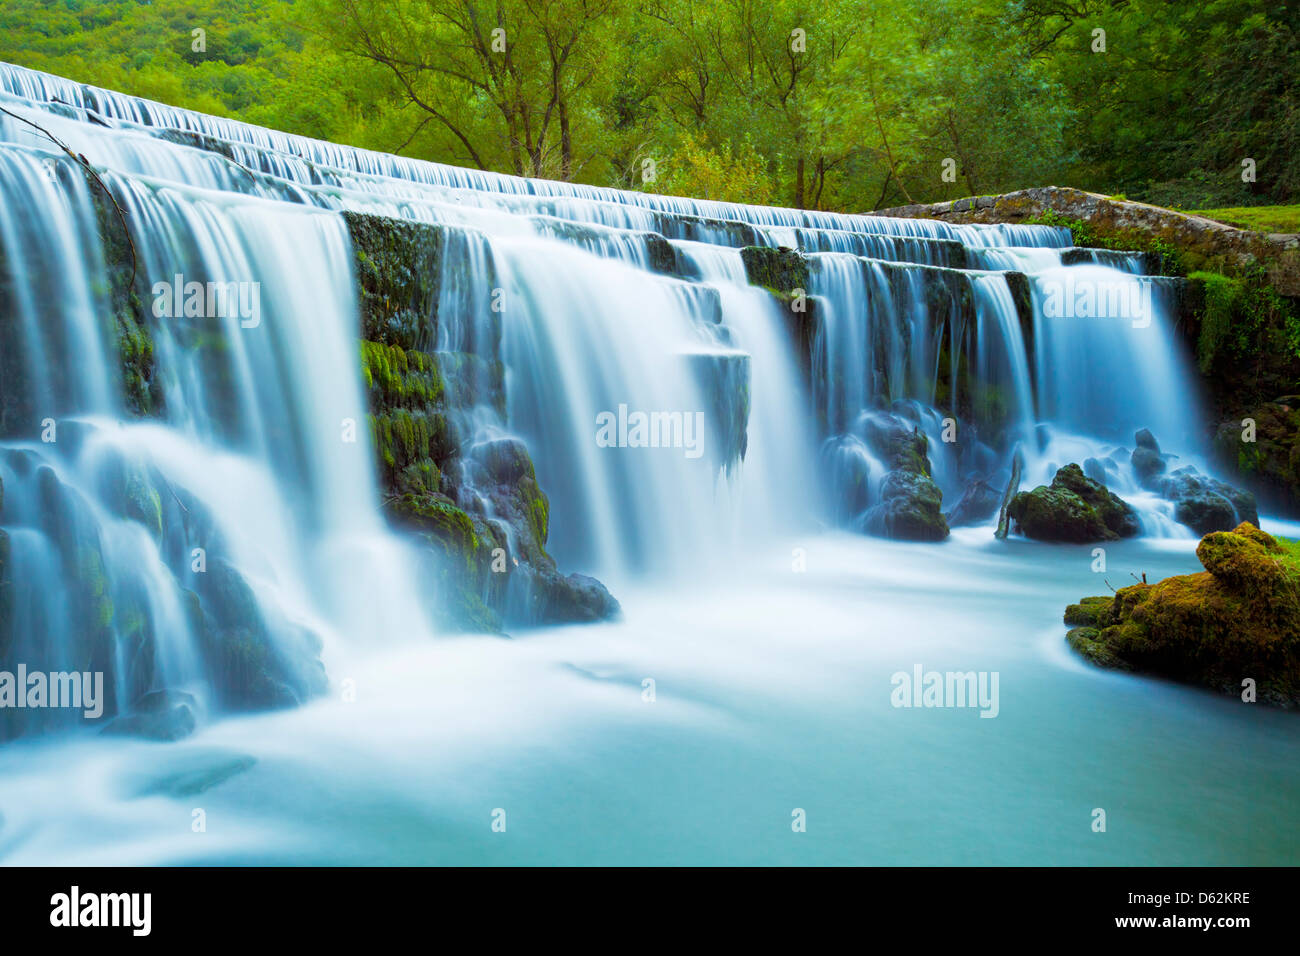 Monsal dale weir waterfall, Peak District National Park, Derbyshire, England, GB, UK, EU, Europe - Stock Image